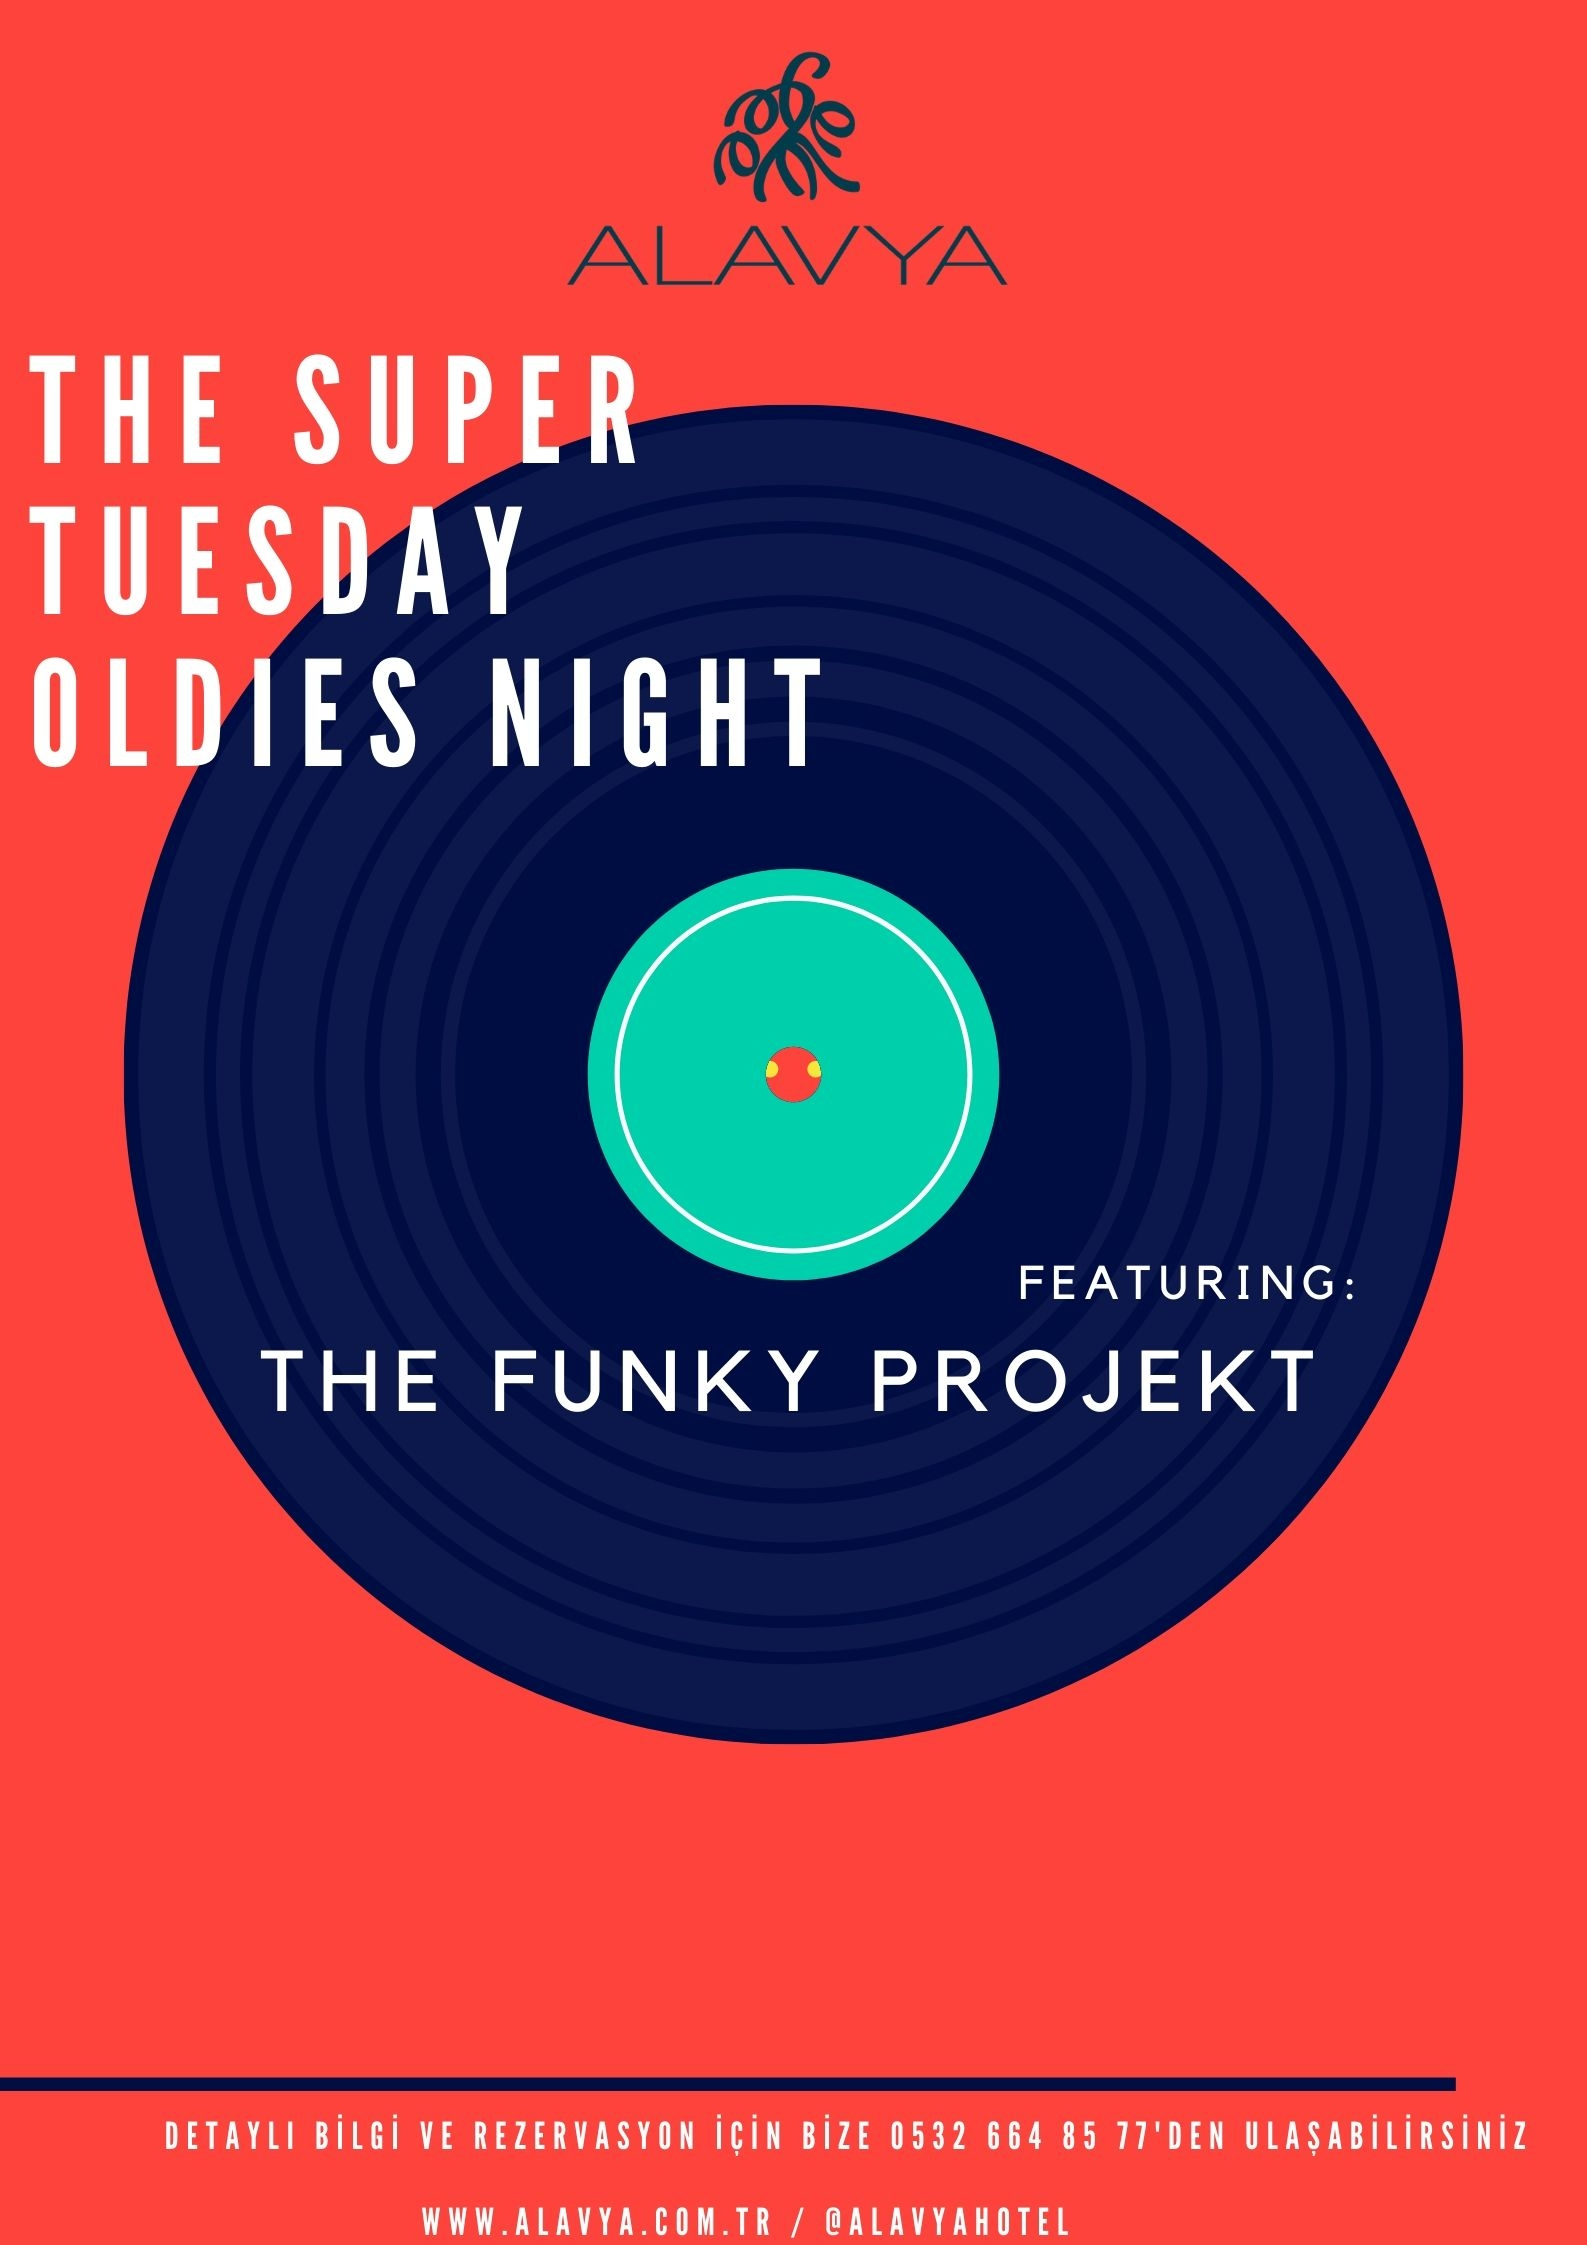 The Super Tuesday Oldies Night